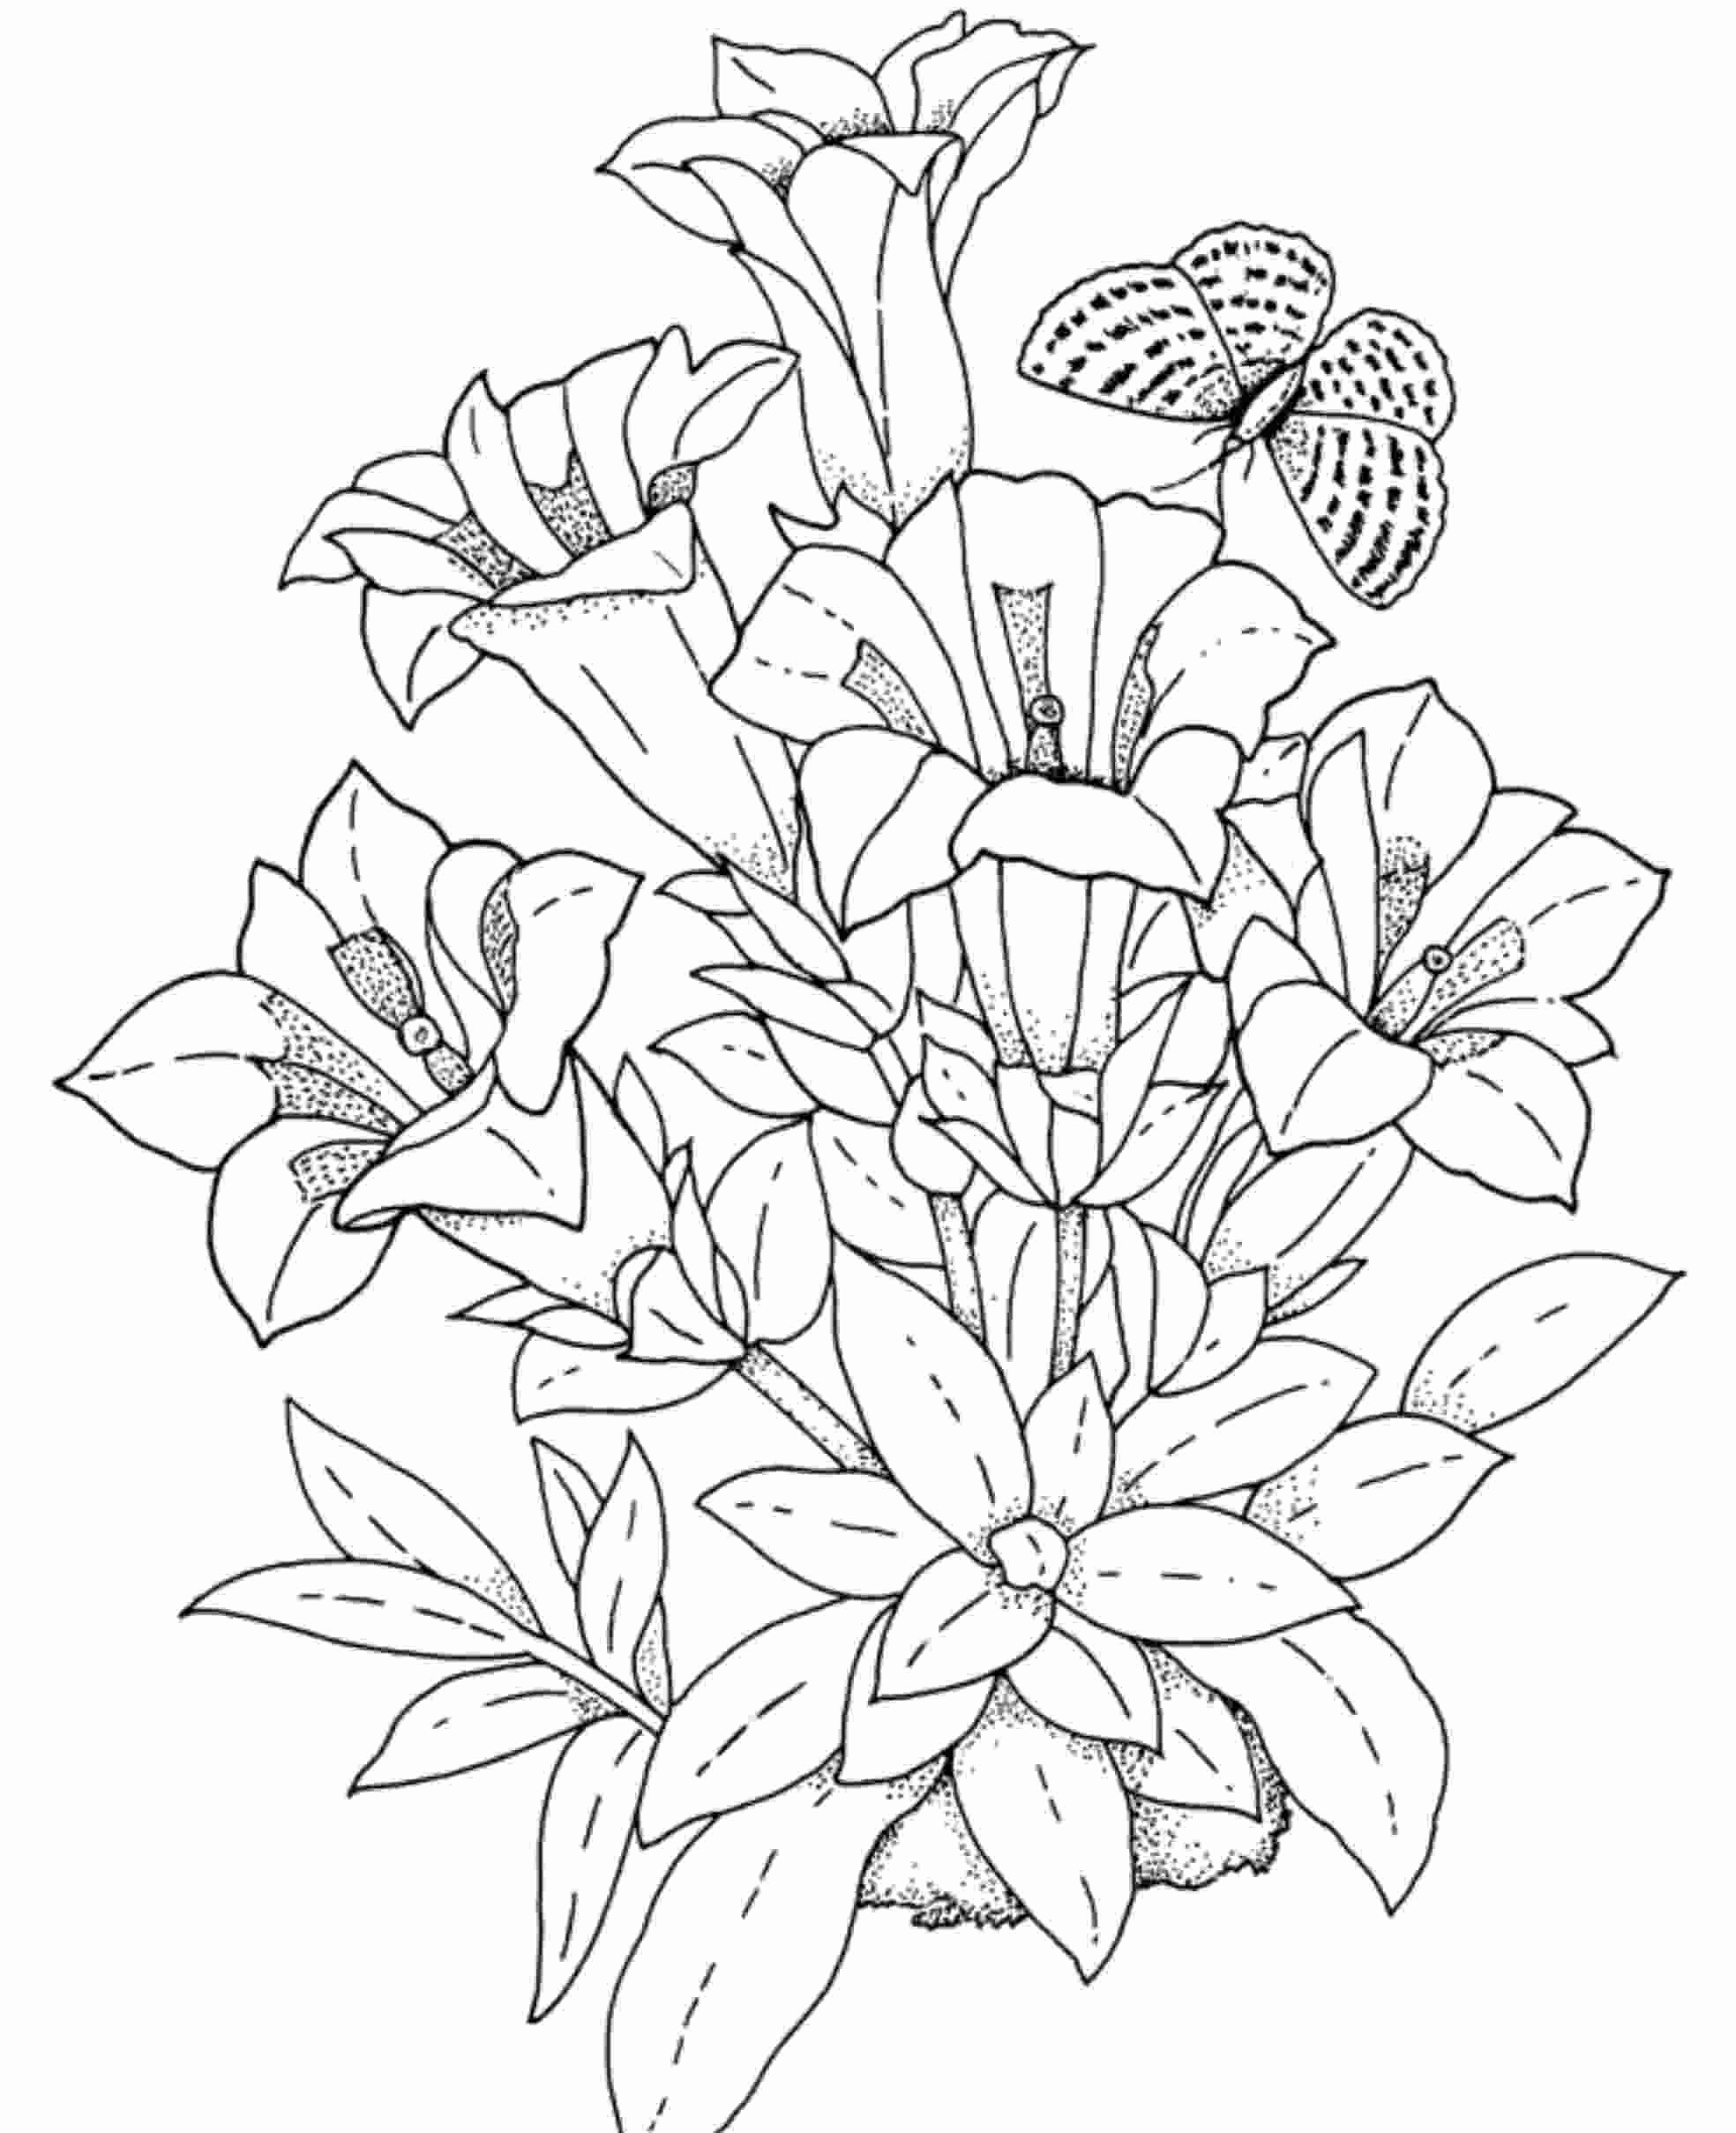 Spring Flower Coloring Pages For Kids Free Printable In 2020 Sunflower Coloring Pages Printable Flower Coloring Pages Butterfly Coloring Page